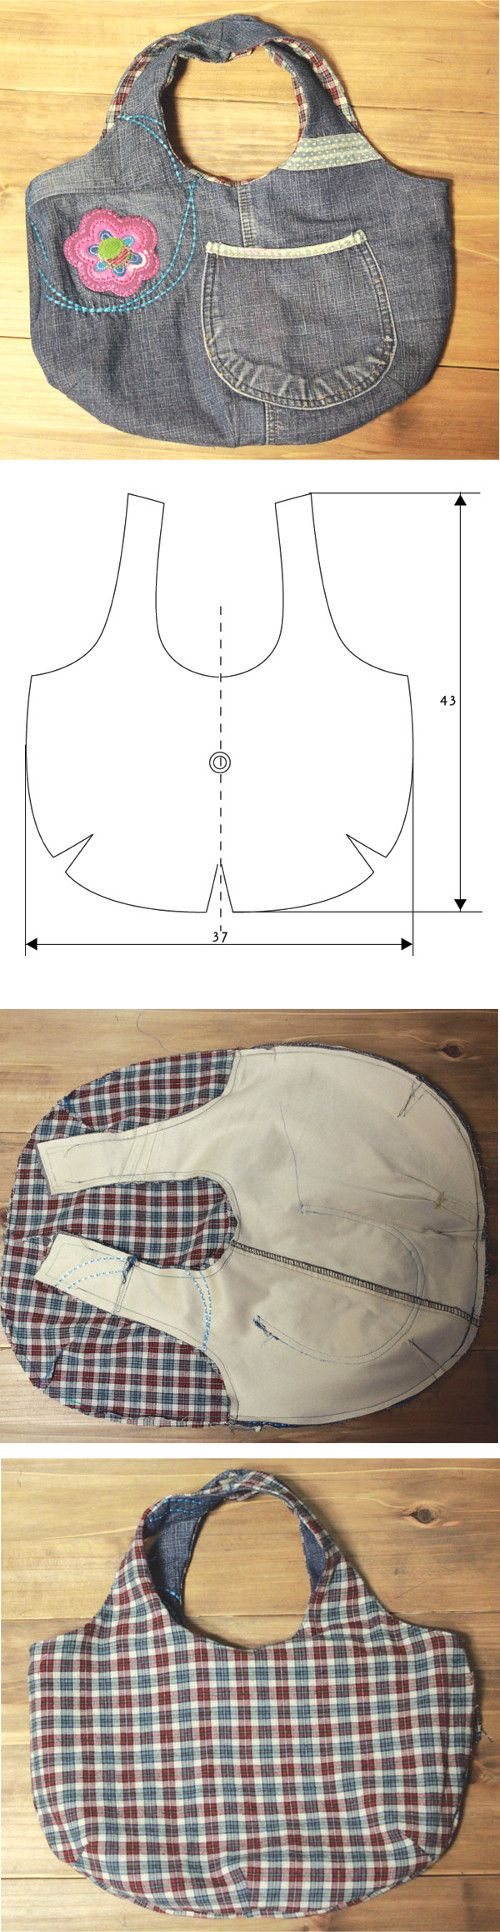 Easy Jeans Step to Step Bag http://fastmade.blogspot.com/2016/12/step-to-step-jeans-bag-tutorial.html